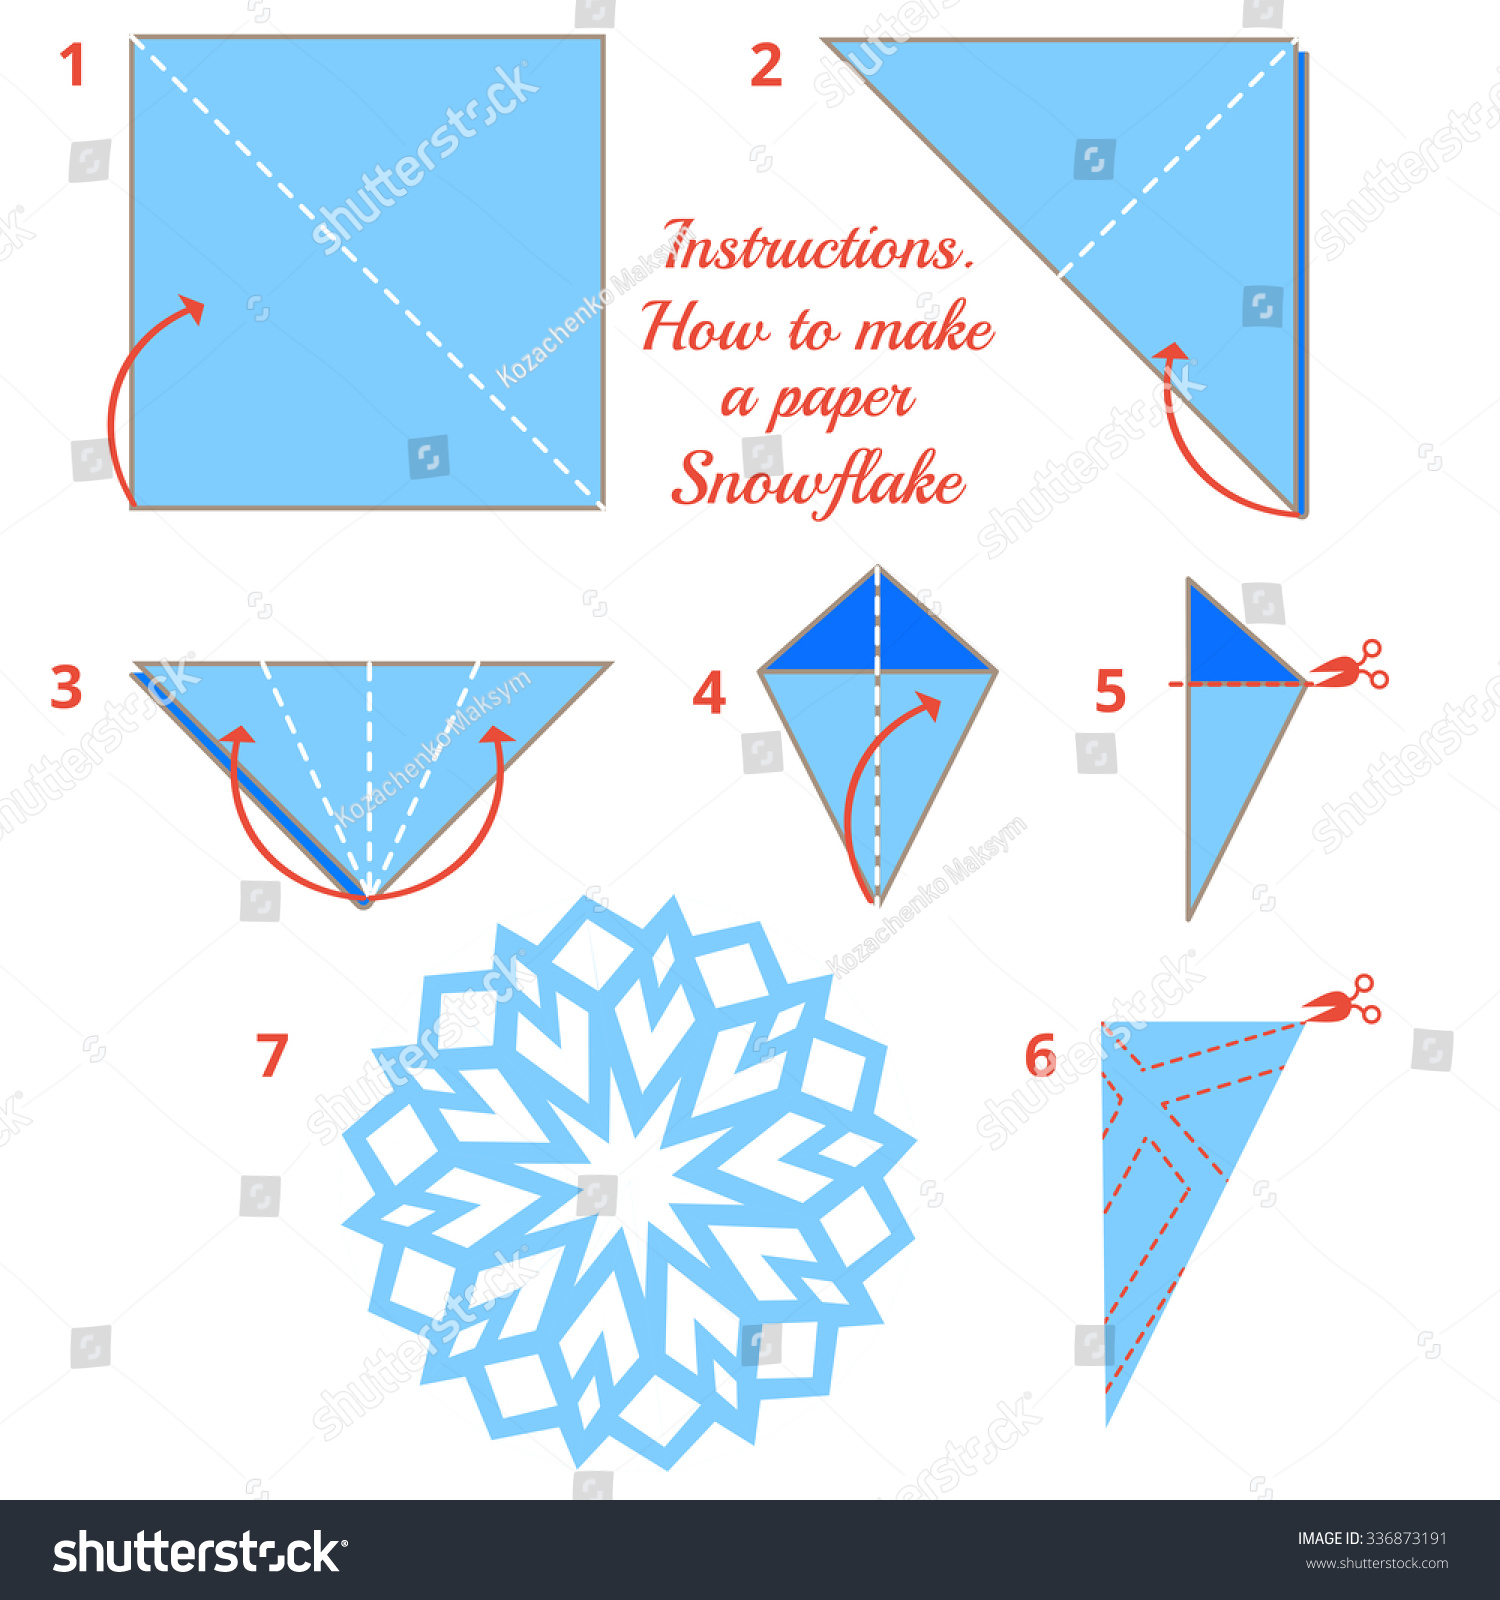 instructions on how to make a paper snowflake